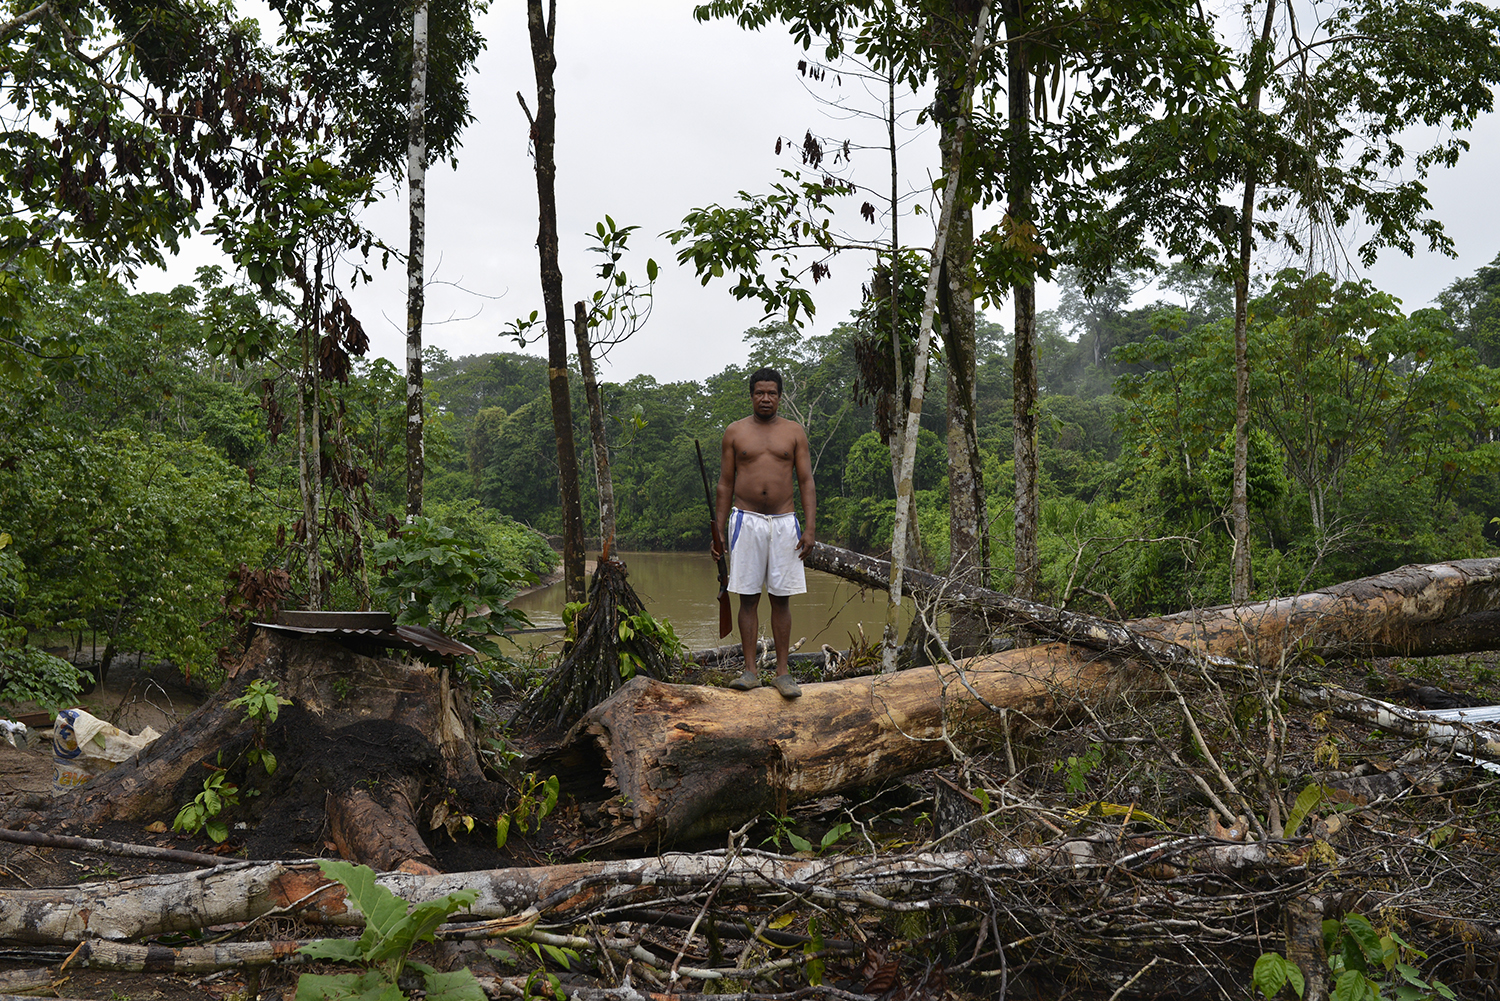 ECUADOR, Yasuni National Park. November 2015.  Juan Carlos Arvalado, a woodcutter and hunter, holds a rifle along the banks of the river Shiripuno. Texaco dumped 18 million of gallons of toxic waste directly into the rivers and soil of the Ecuadorian rainforest affecting hunting, fishing and consequently the lives of residents themselves.